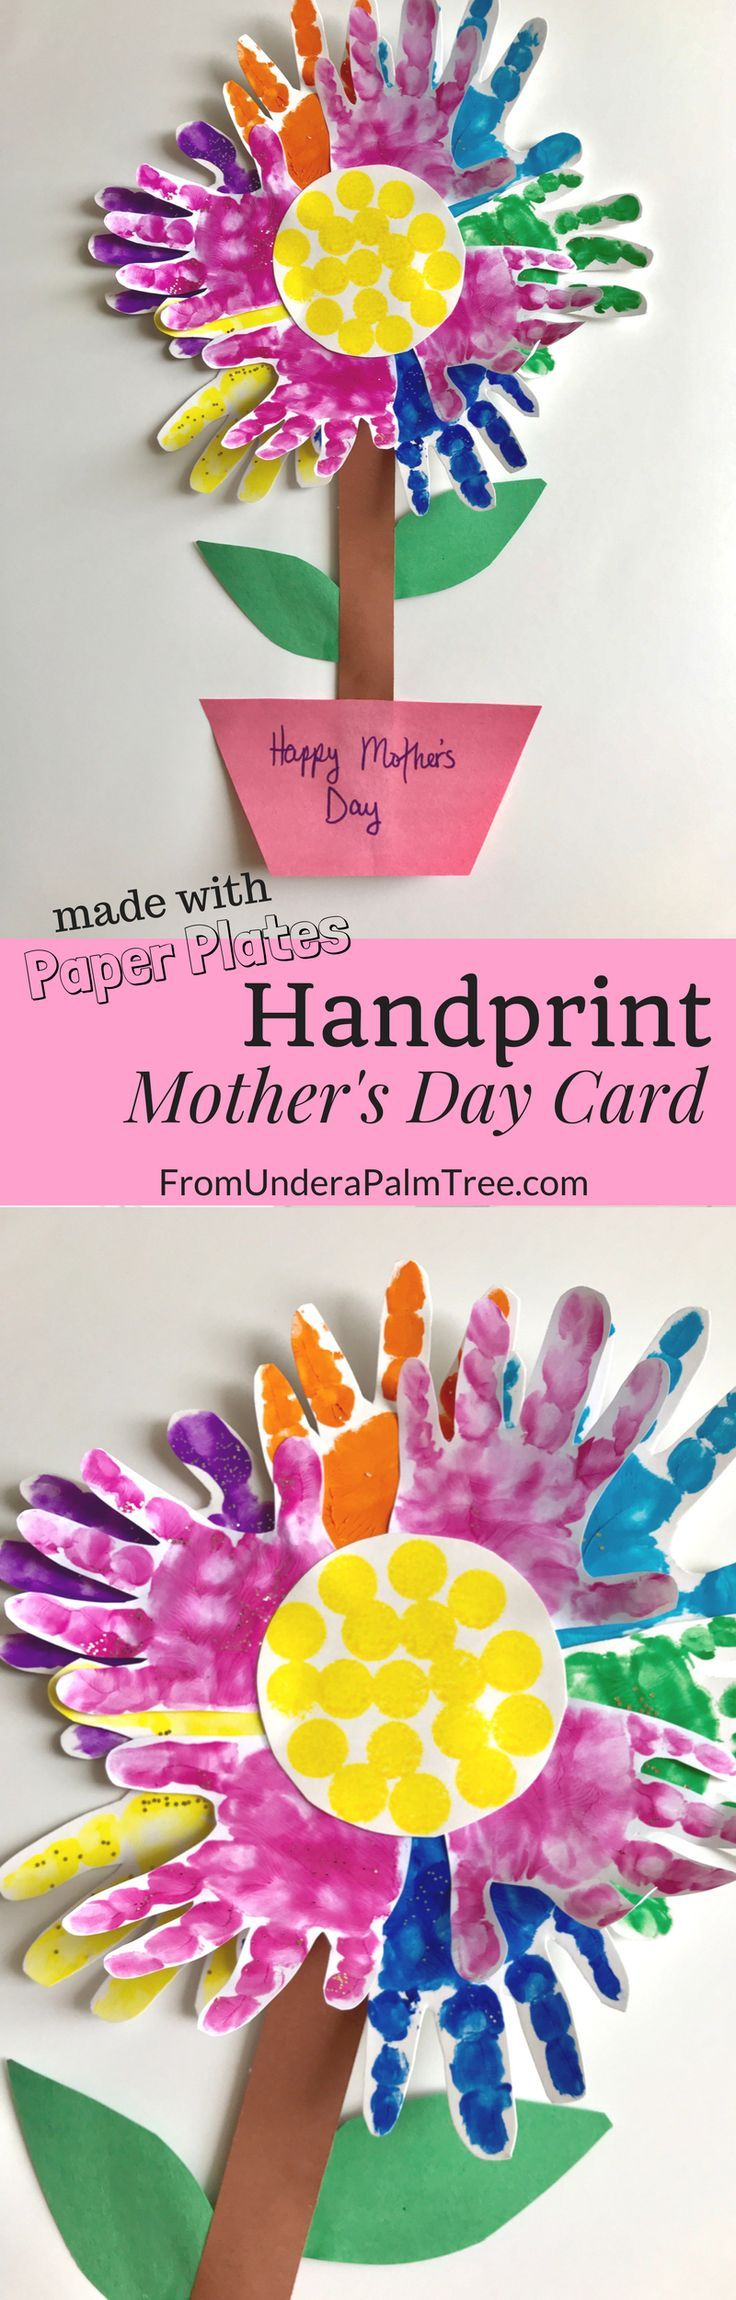 Paper plate handprint motherus day card mom cards mom gifts and